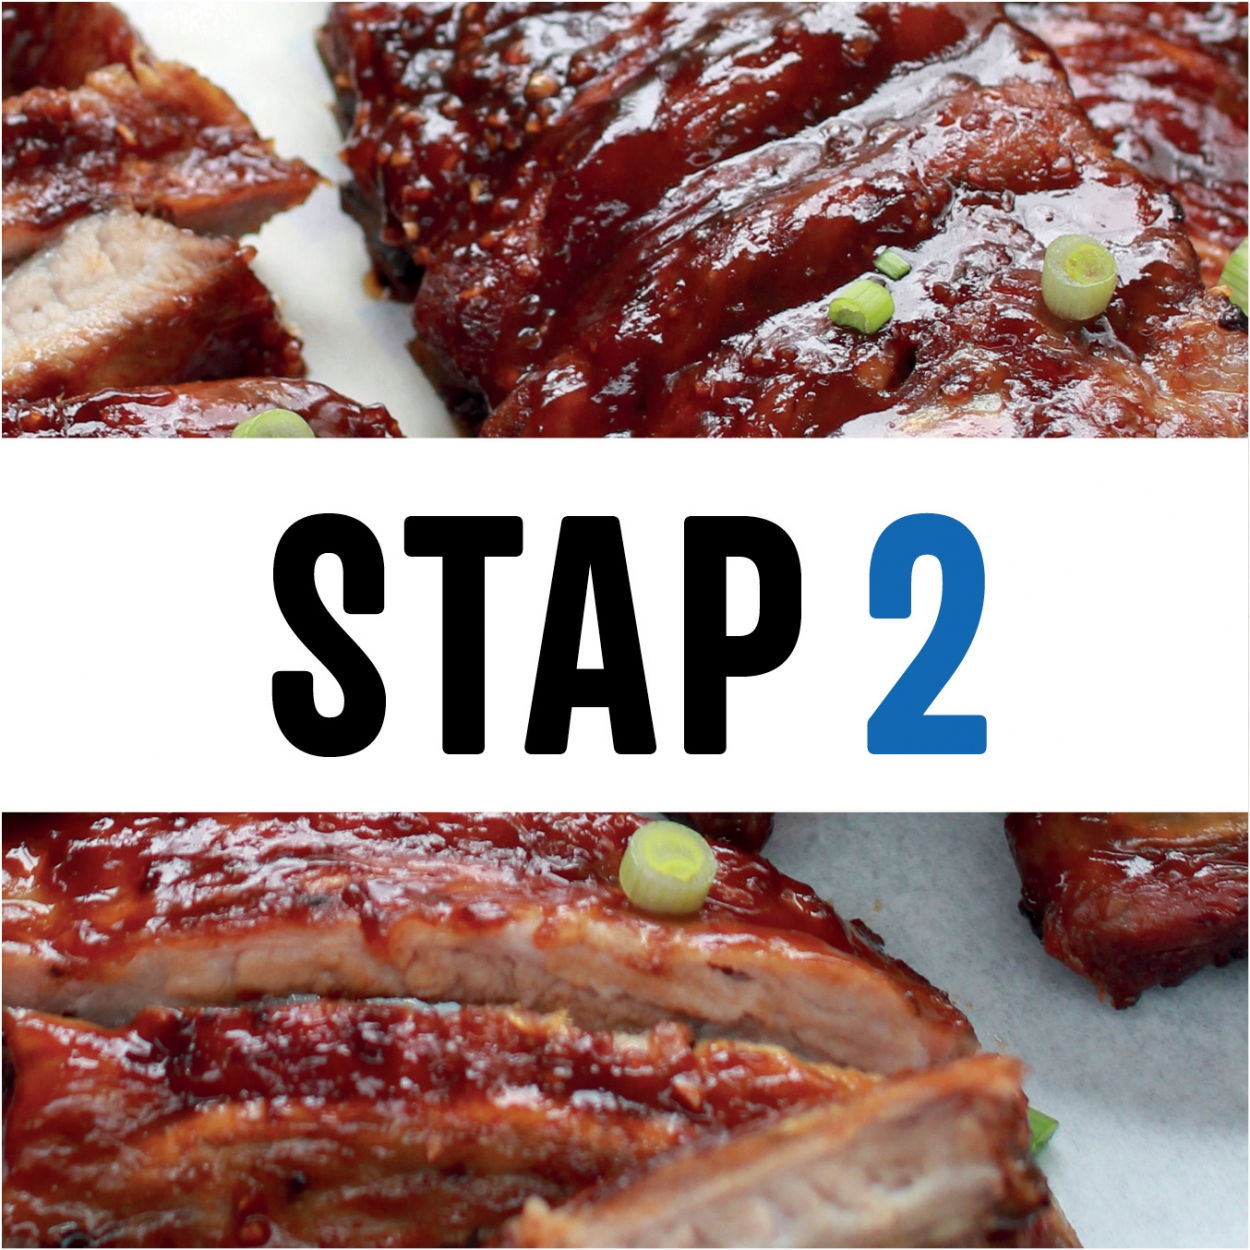 Slow Cooking BBQ_stap 2_carrefour